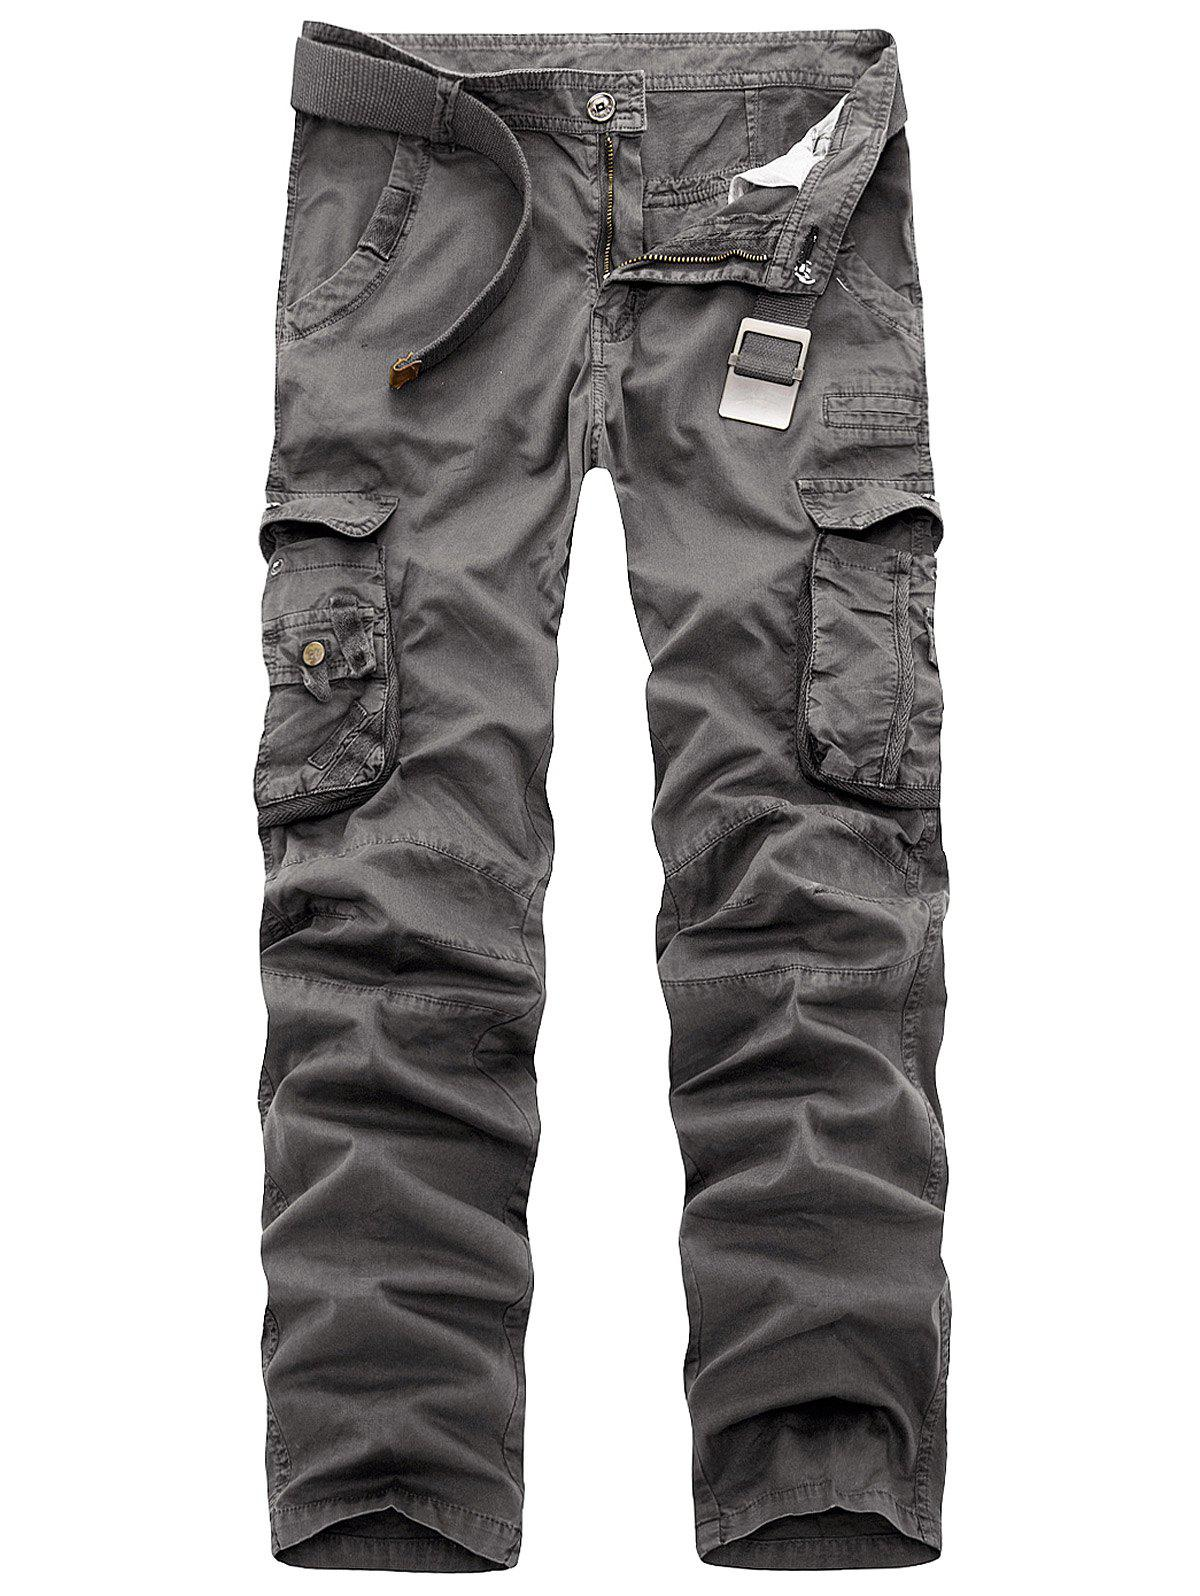 Affordable Zipper Fly Multi Pockets Slimming Cargo Pants